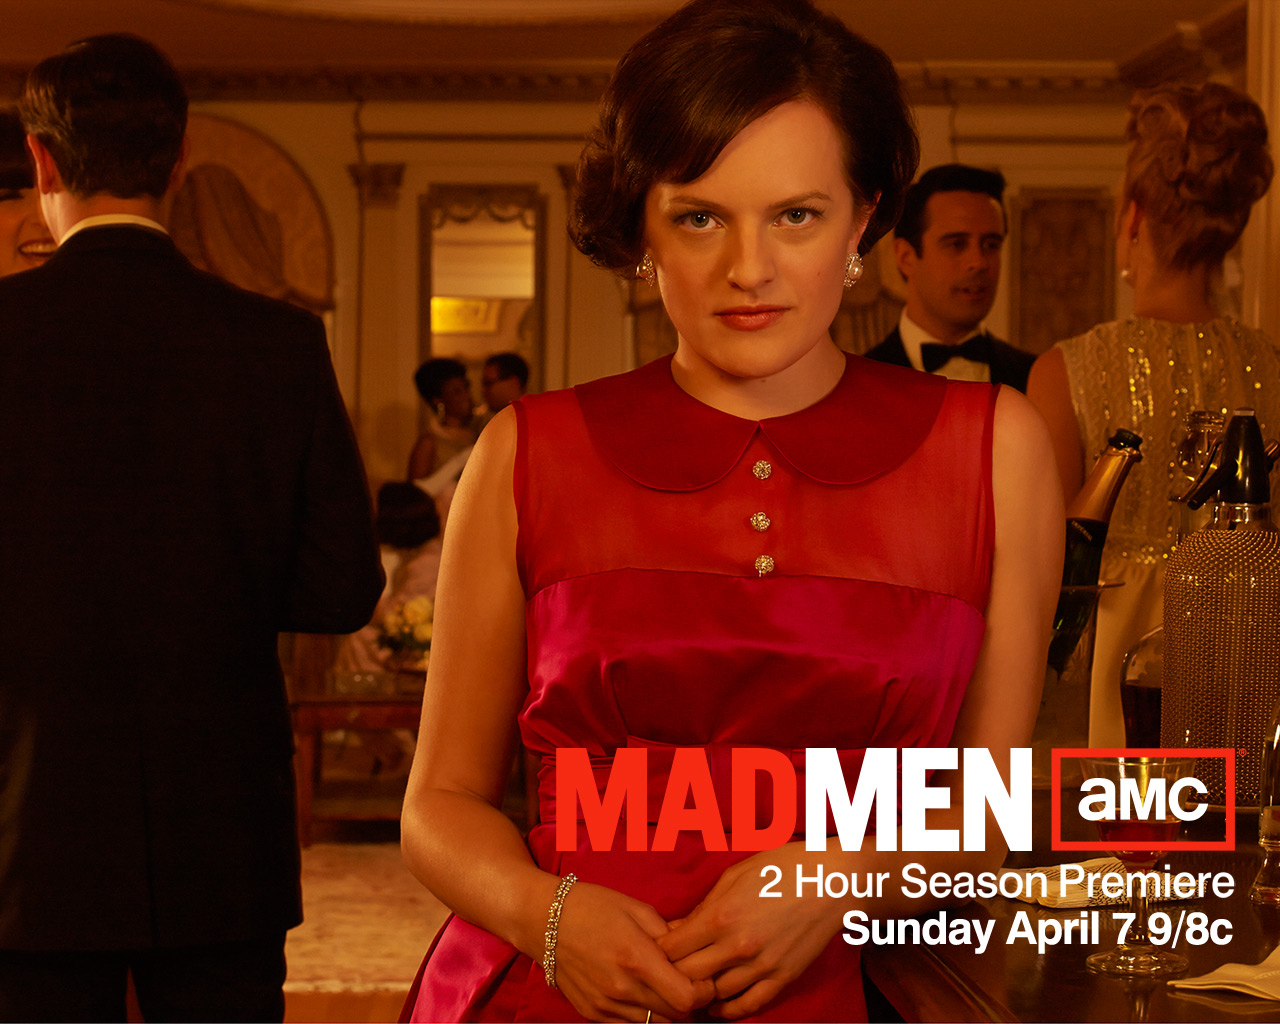 Mad Men Images Mad Men Season 6 Wallpapers Hd Wallpaper And